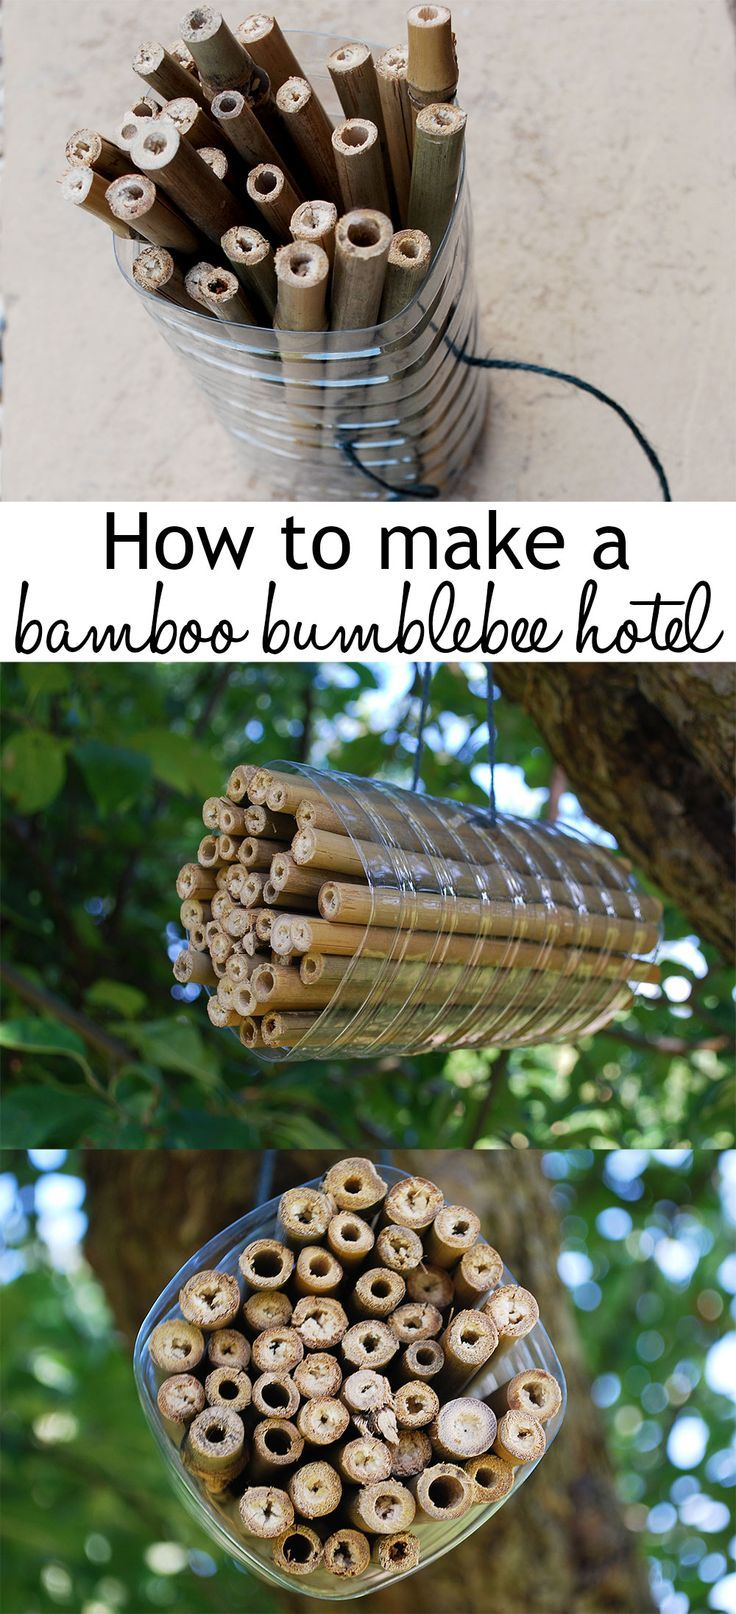 Make a bamboo insect hotel for solitary bees! So easy and cheap, and it's perfect for pollinating bees to hibernate and lay their eggs. Help your garden wildlife!